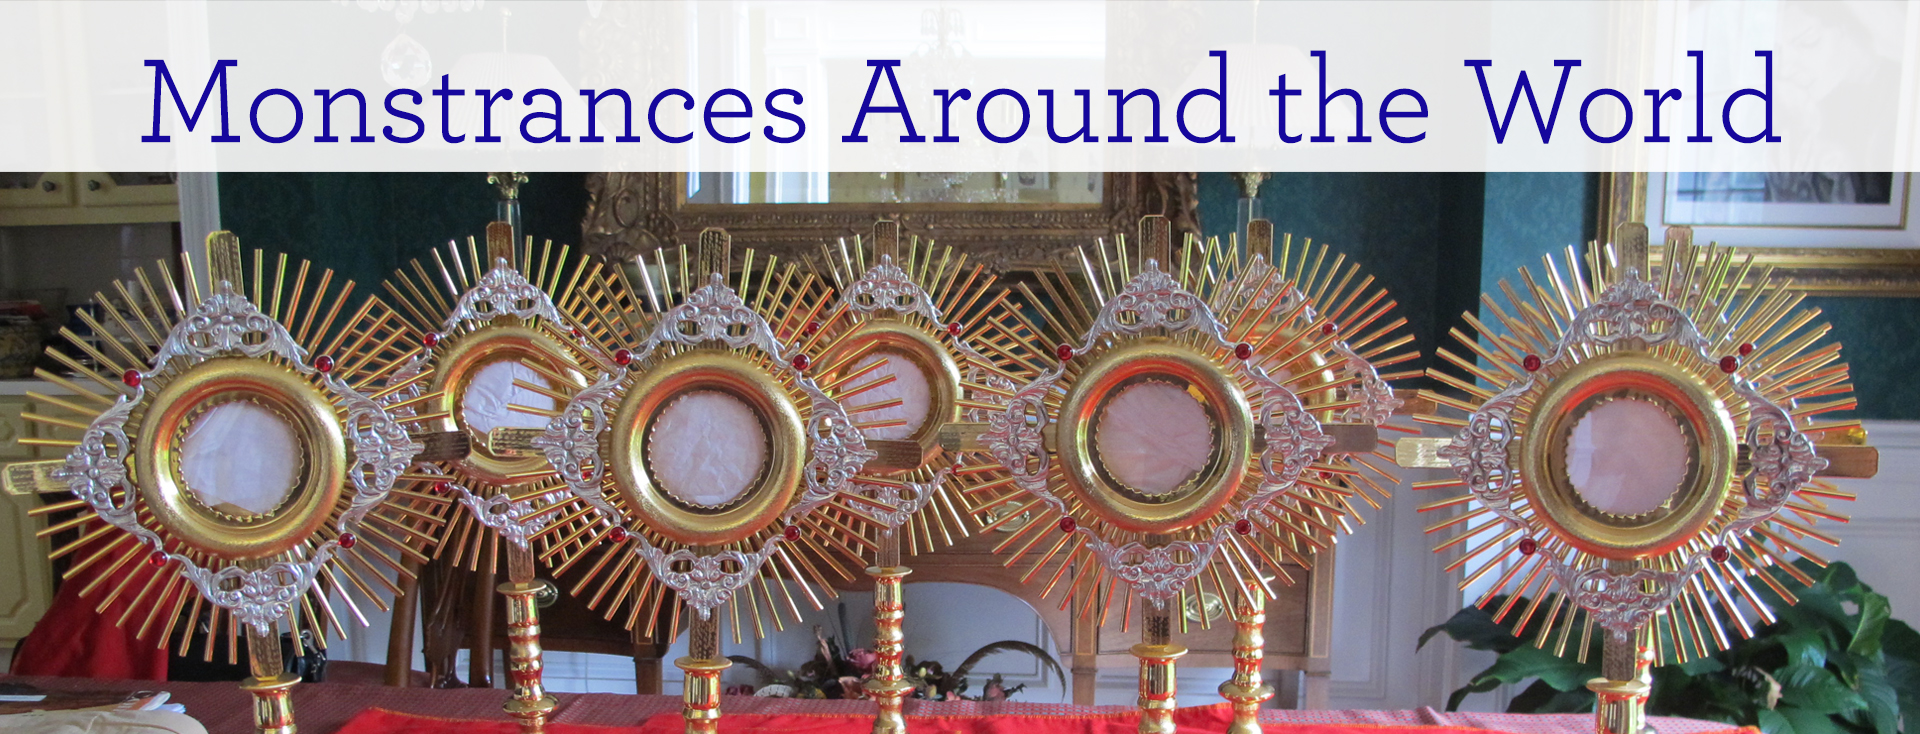 Monstrances Around the World